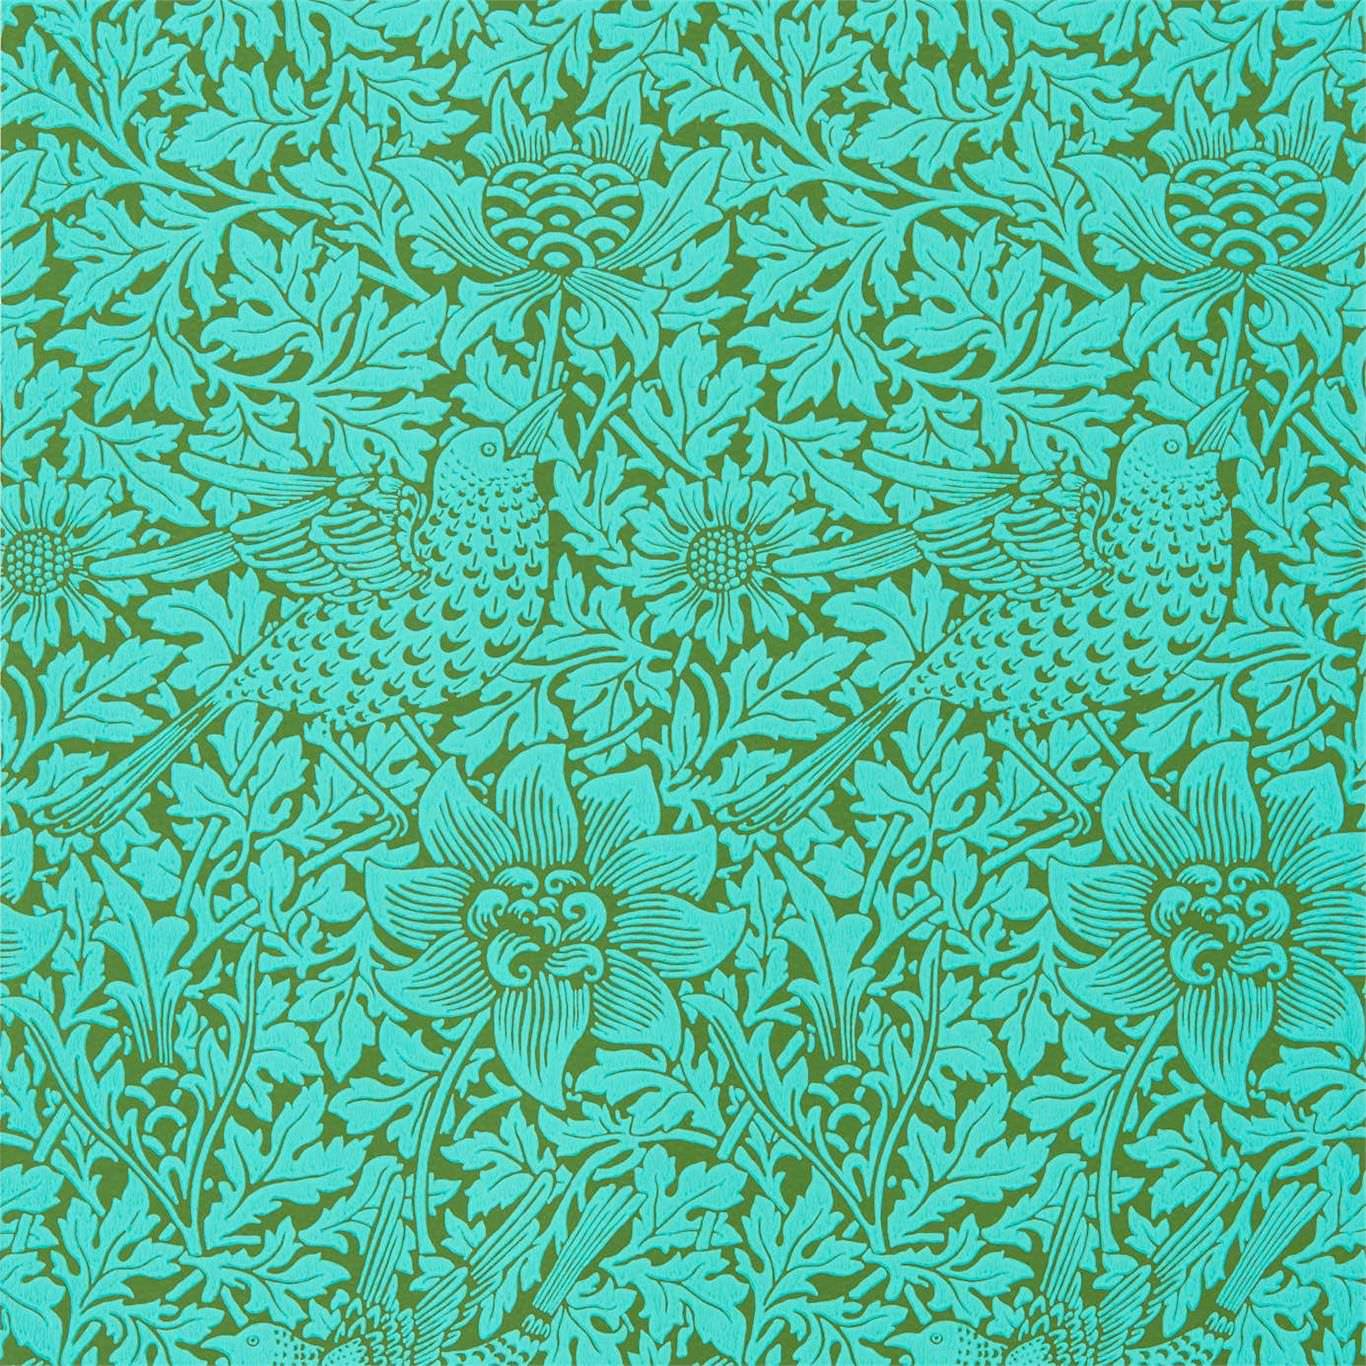 Morris & Co Tapet Anemone Olive Turquoise